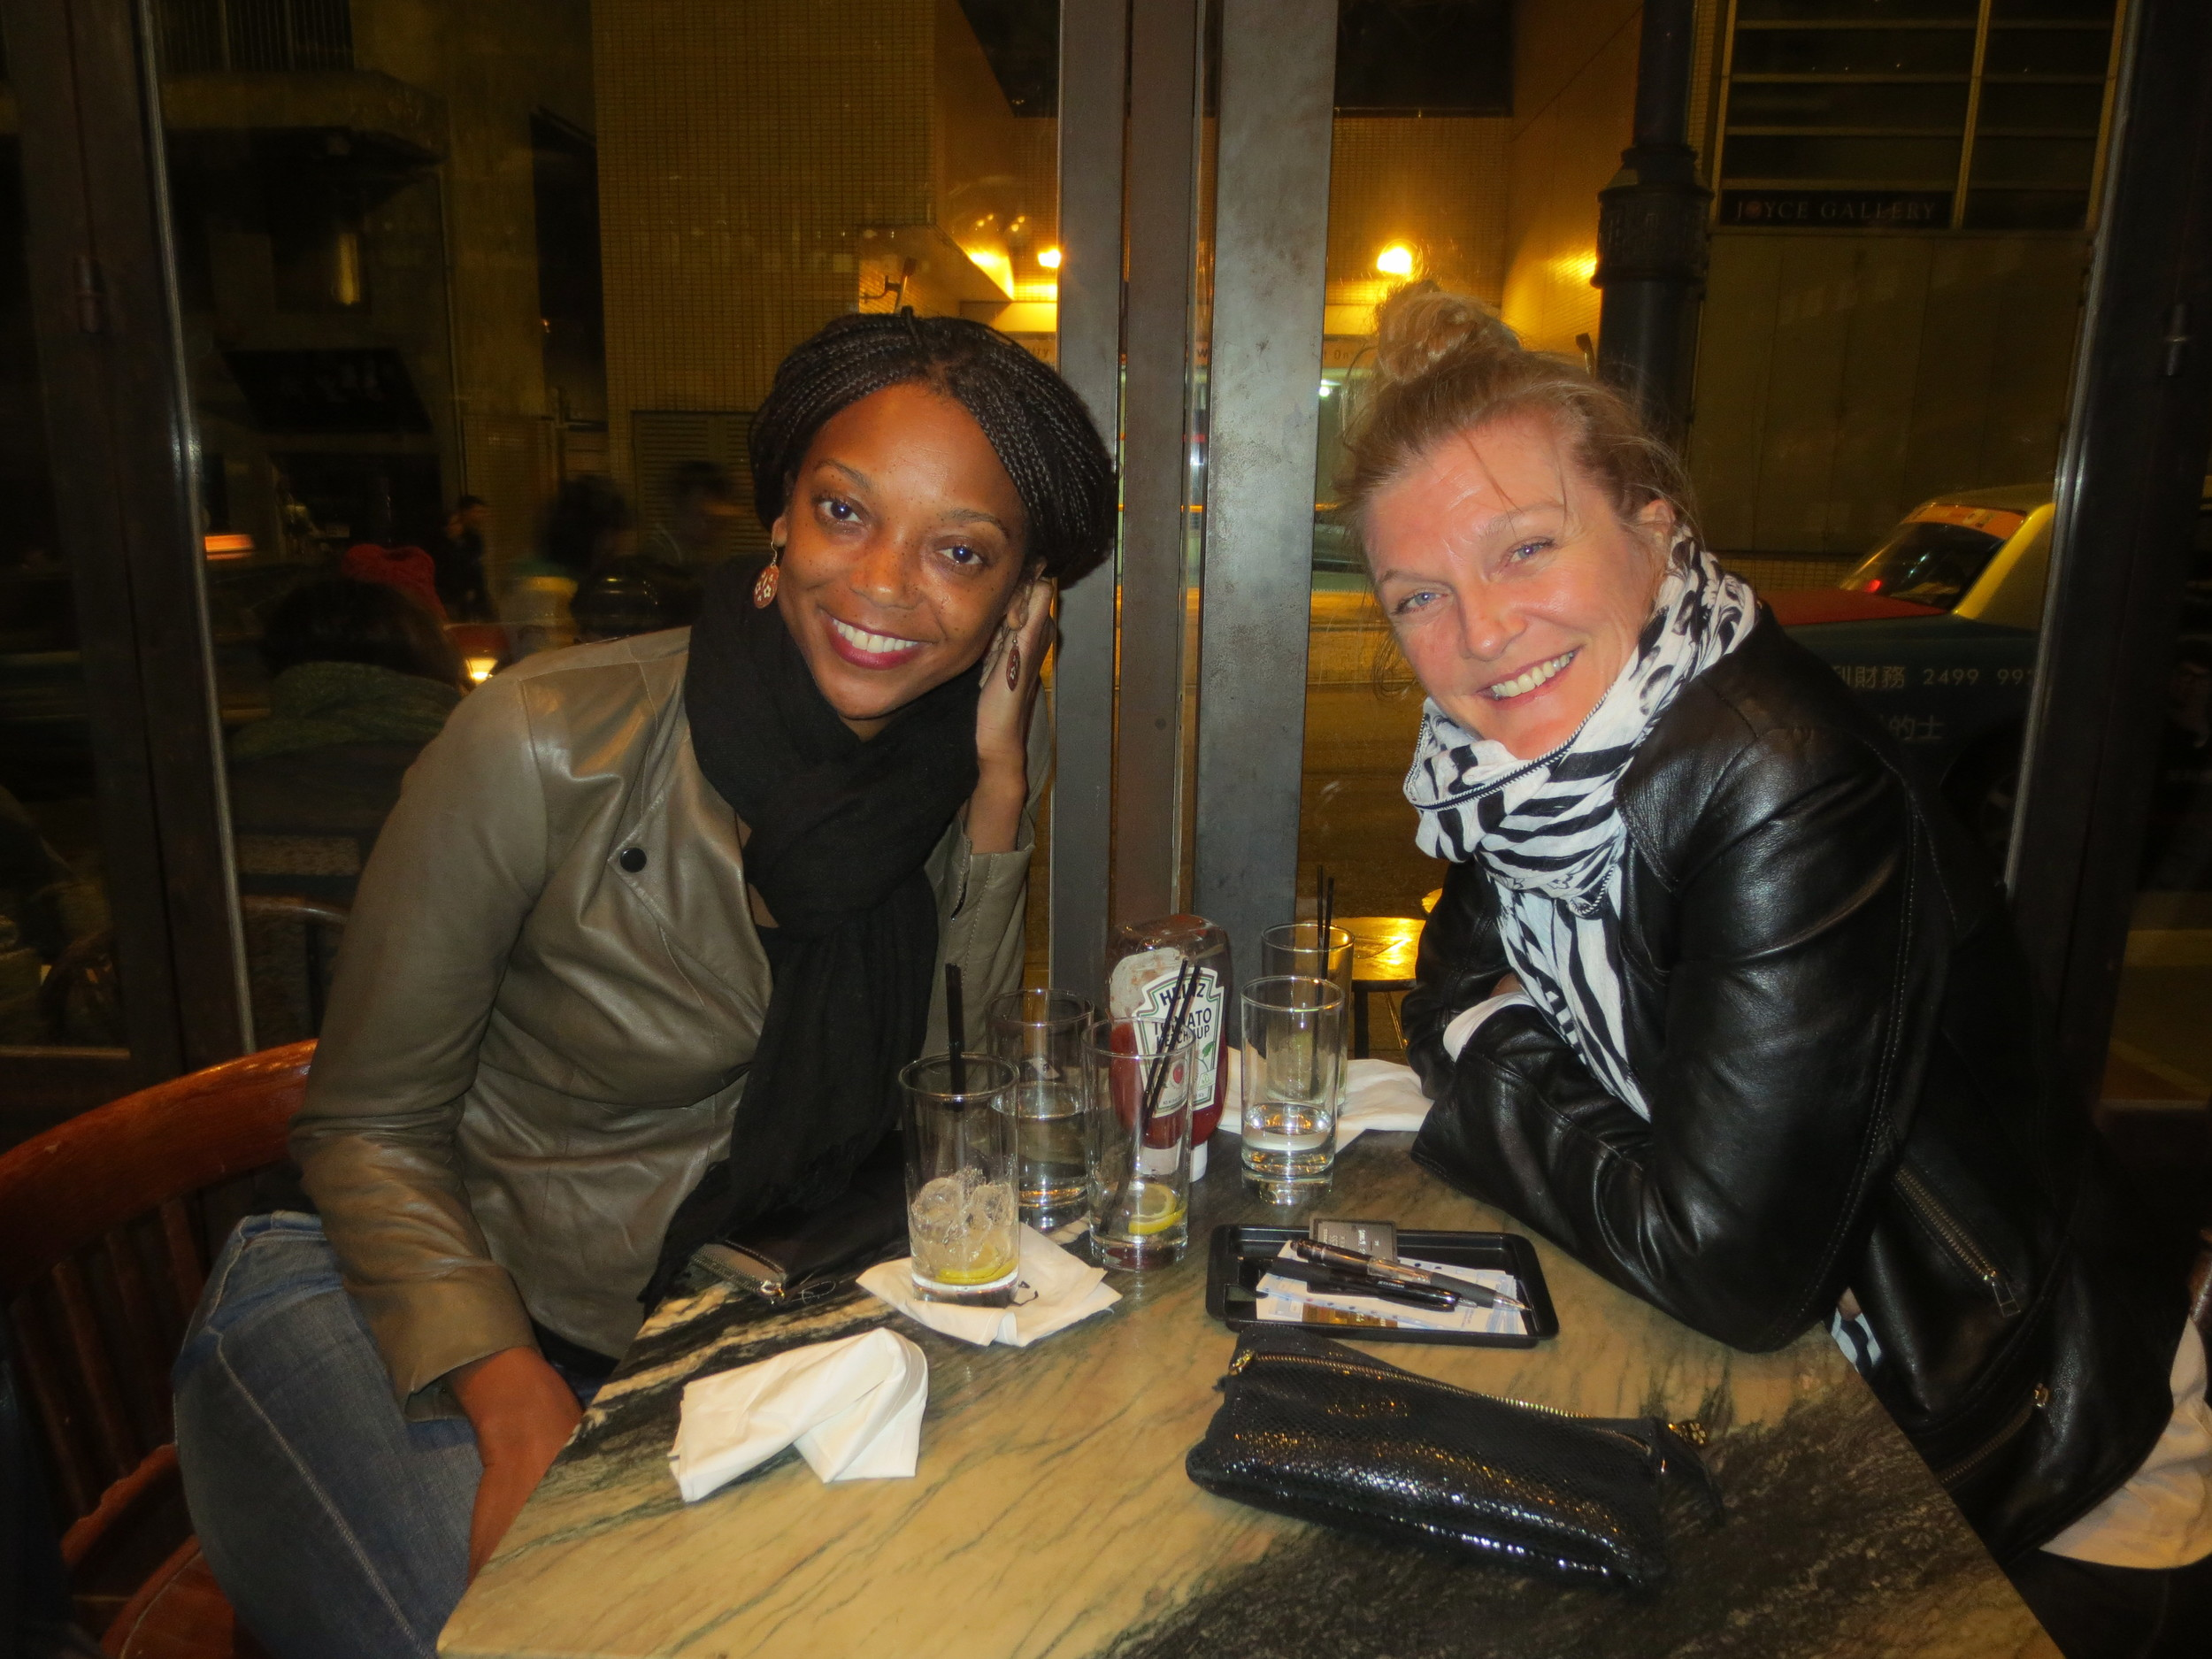 With one of my lady loves, Margot, in Hong Kong, after a low-key New Year's Eve dinner. (A good friend does not need the distraction of a big event on New Years, only you.)